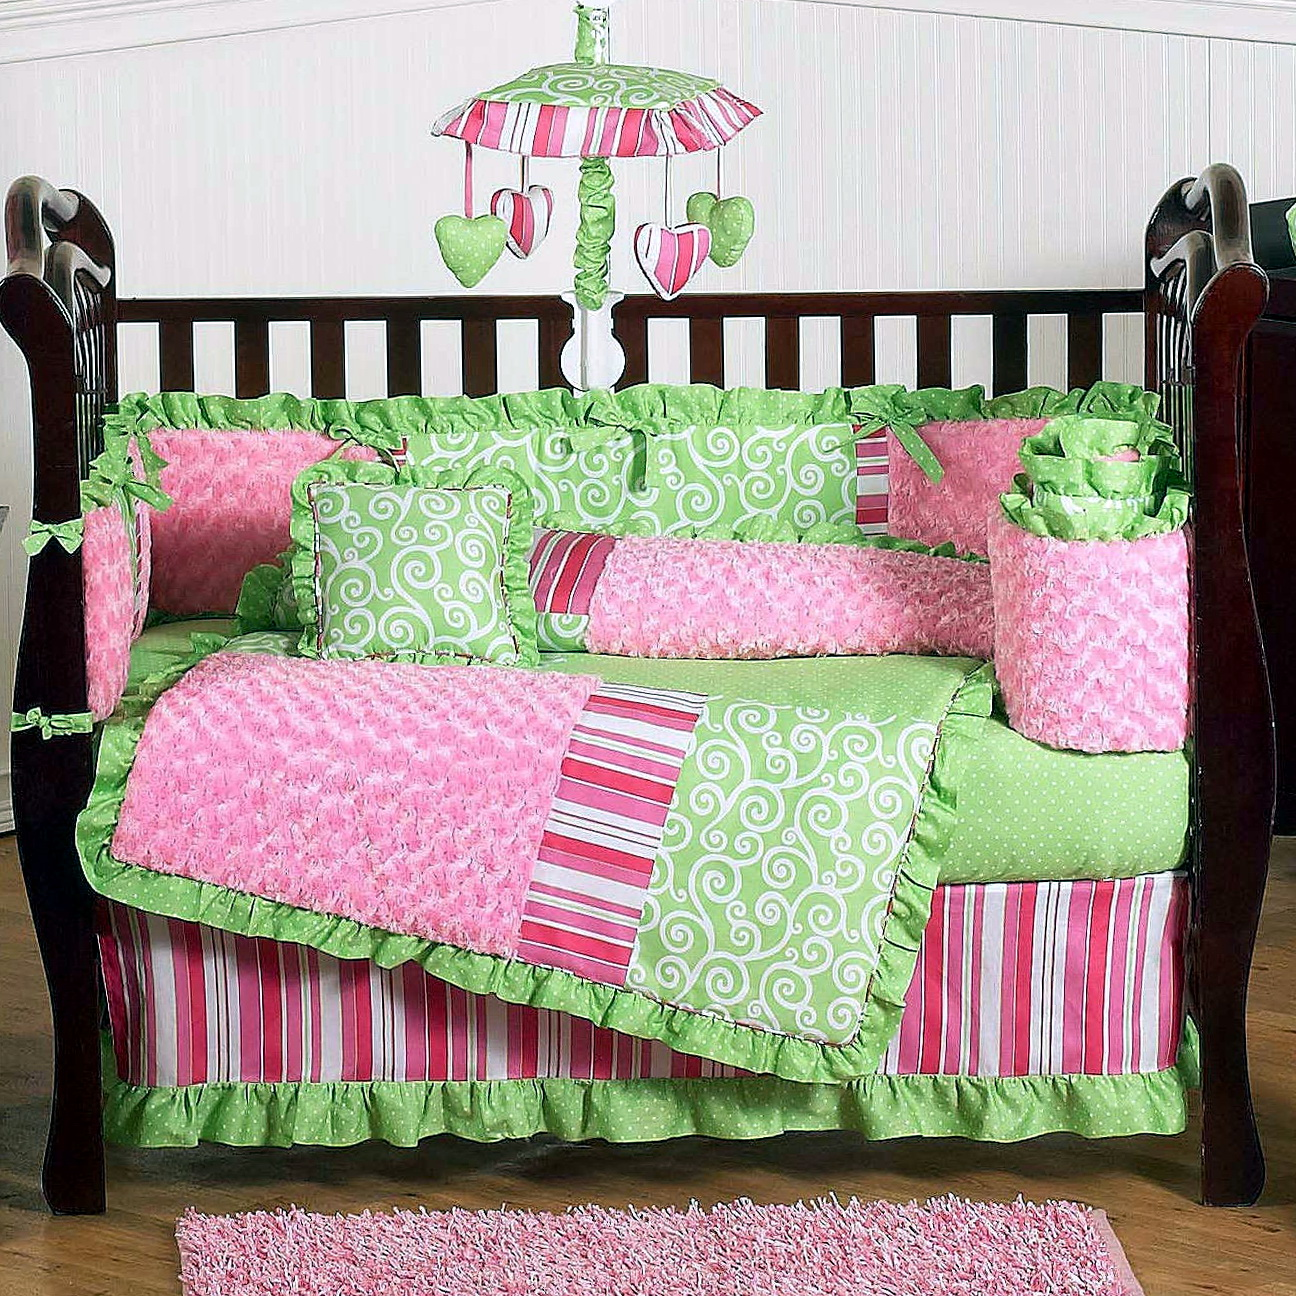 Mini Crib Bedding Sets For Girls